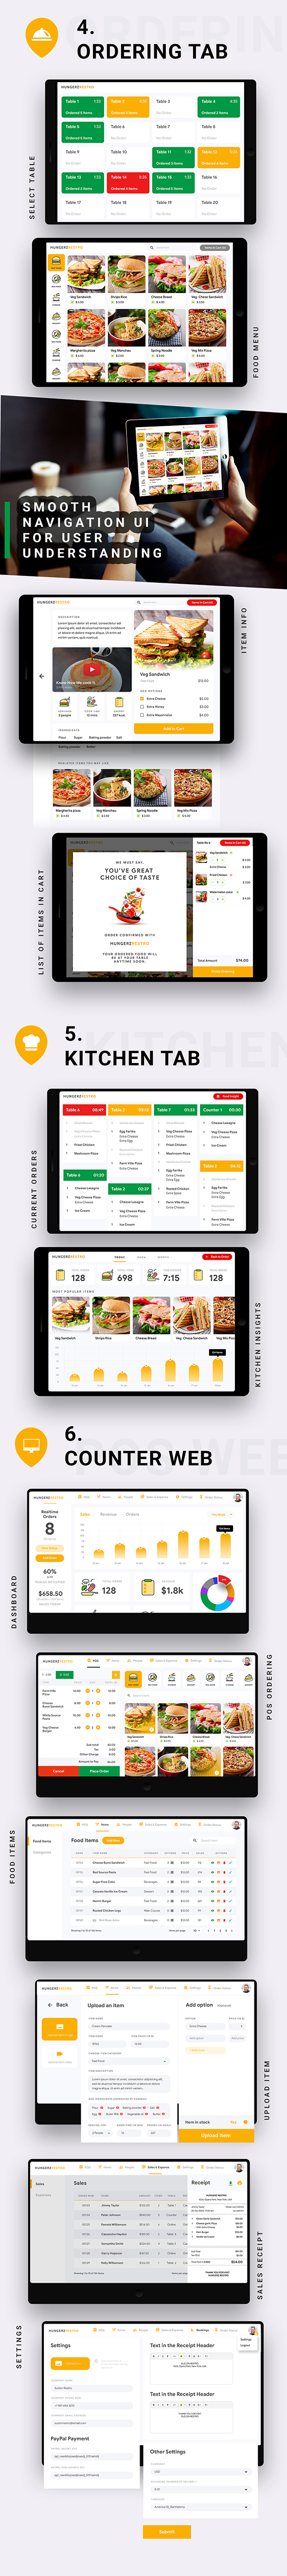 8 in 1 multi Restaurant Food Ordering App|Food Delivery App|Android+iOS App Template|Flutter Hungerz - 13